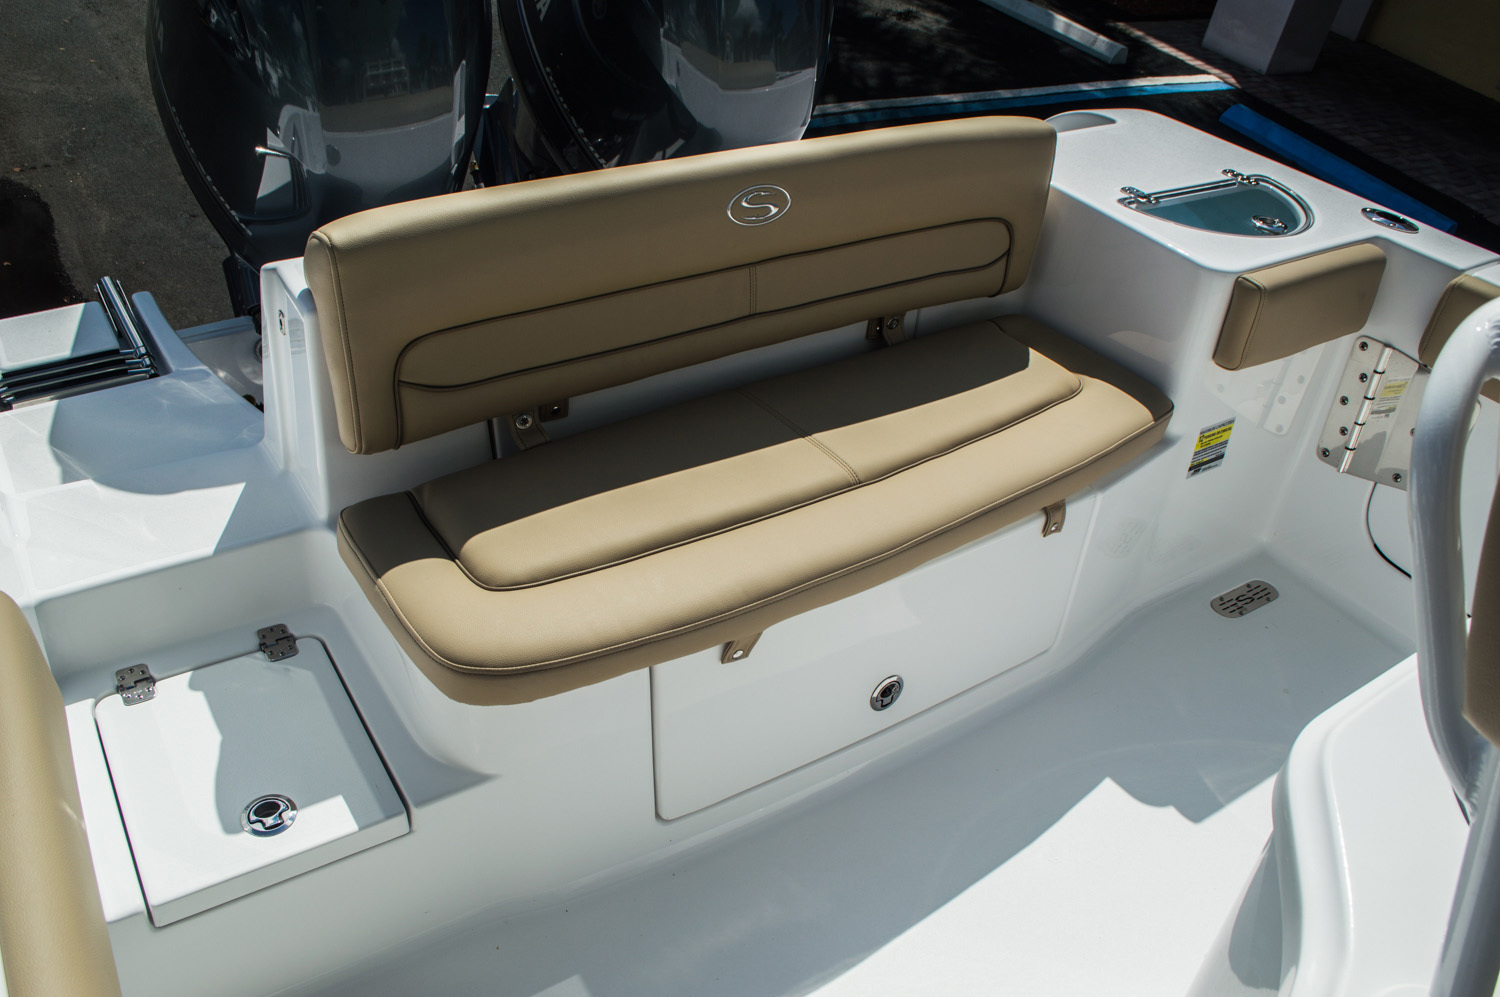 Thumbnail 44 for New 2016 Sportsman Heritage 251 Center Console boat for sale in West Palm Beach, FL